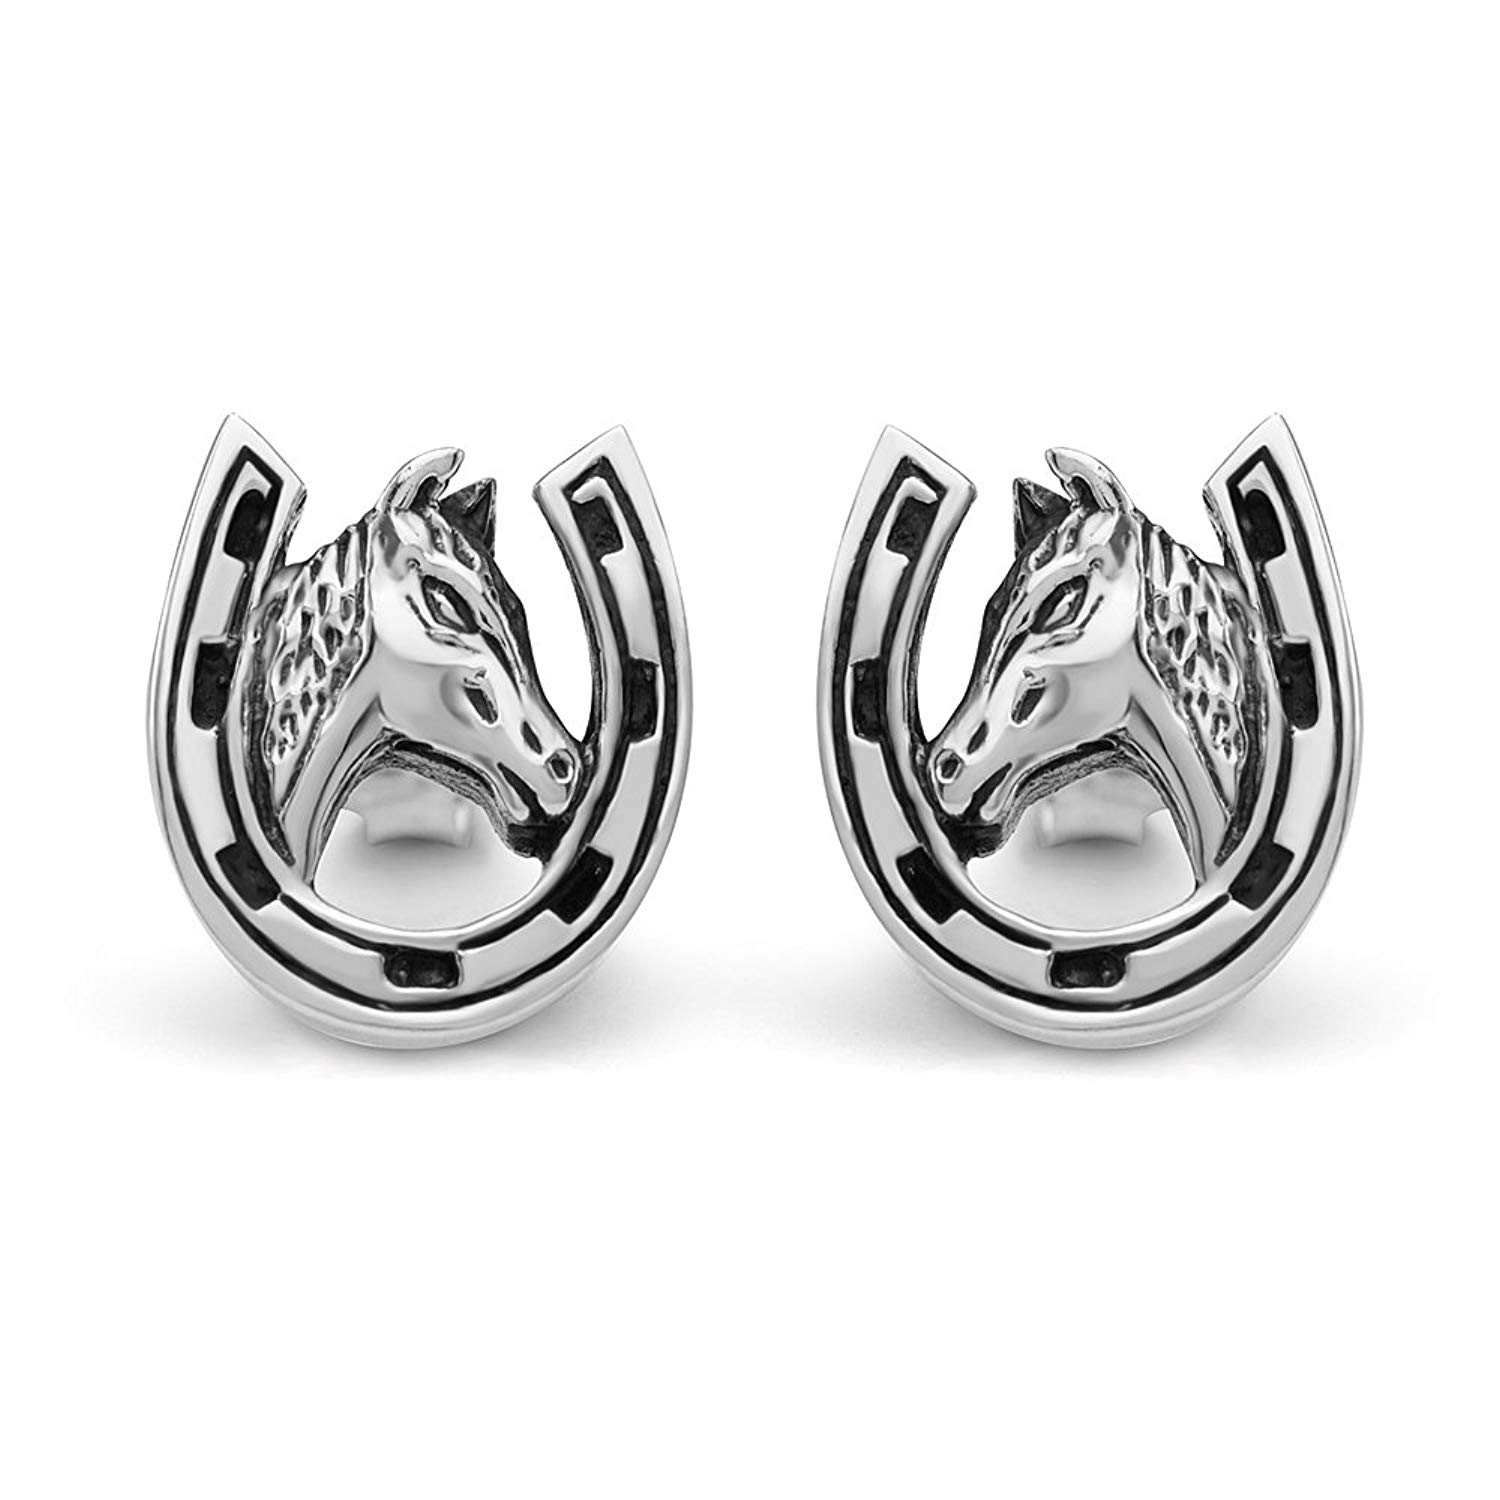 31704fab6 Get Quotations · 925 Sterling Silver 10 mm Tiny Lucky Horse Shoe with Horse  Head Post Stud Earrings